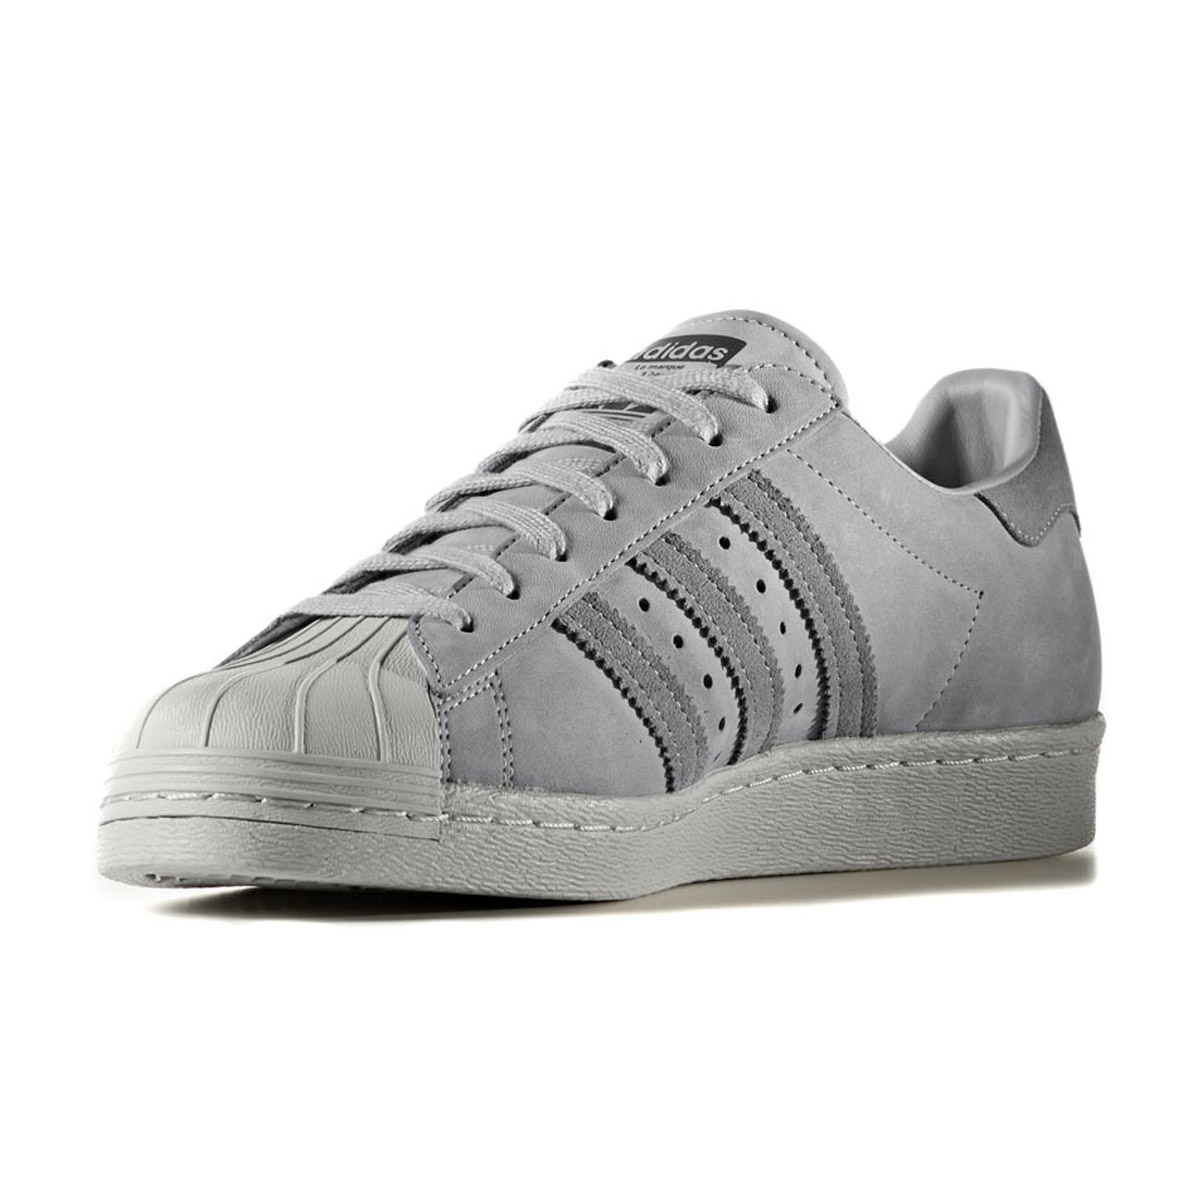 cheap for discount 1e1d7 9807b adidas Originals SUPERSTAR 80s (Adidas originals superstar 80s) MID  GREY/GREY THREE/MID GREY 17FW-I